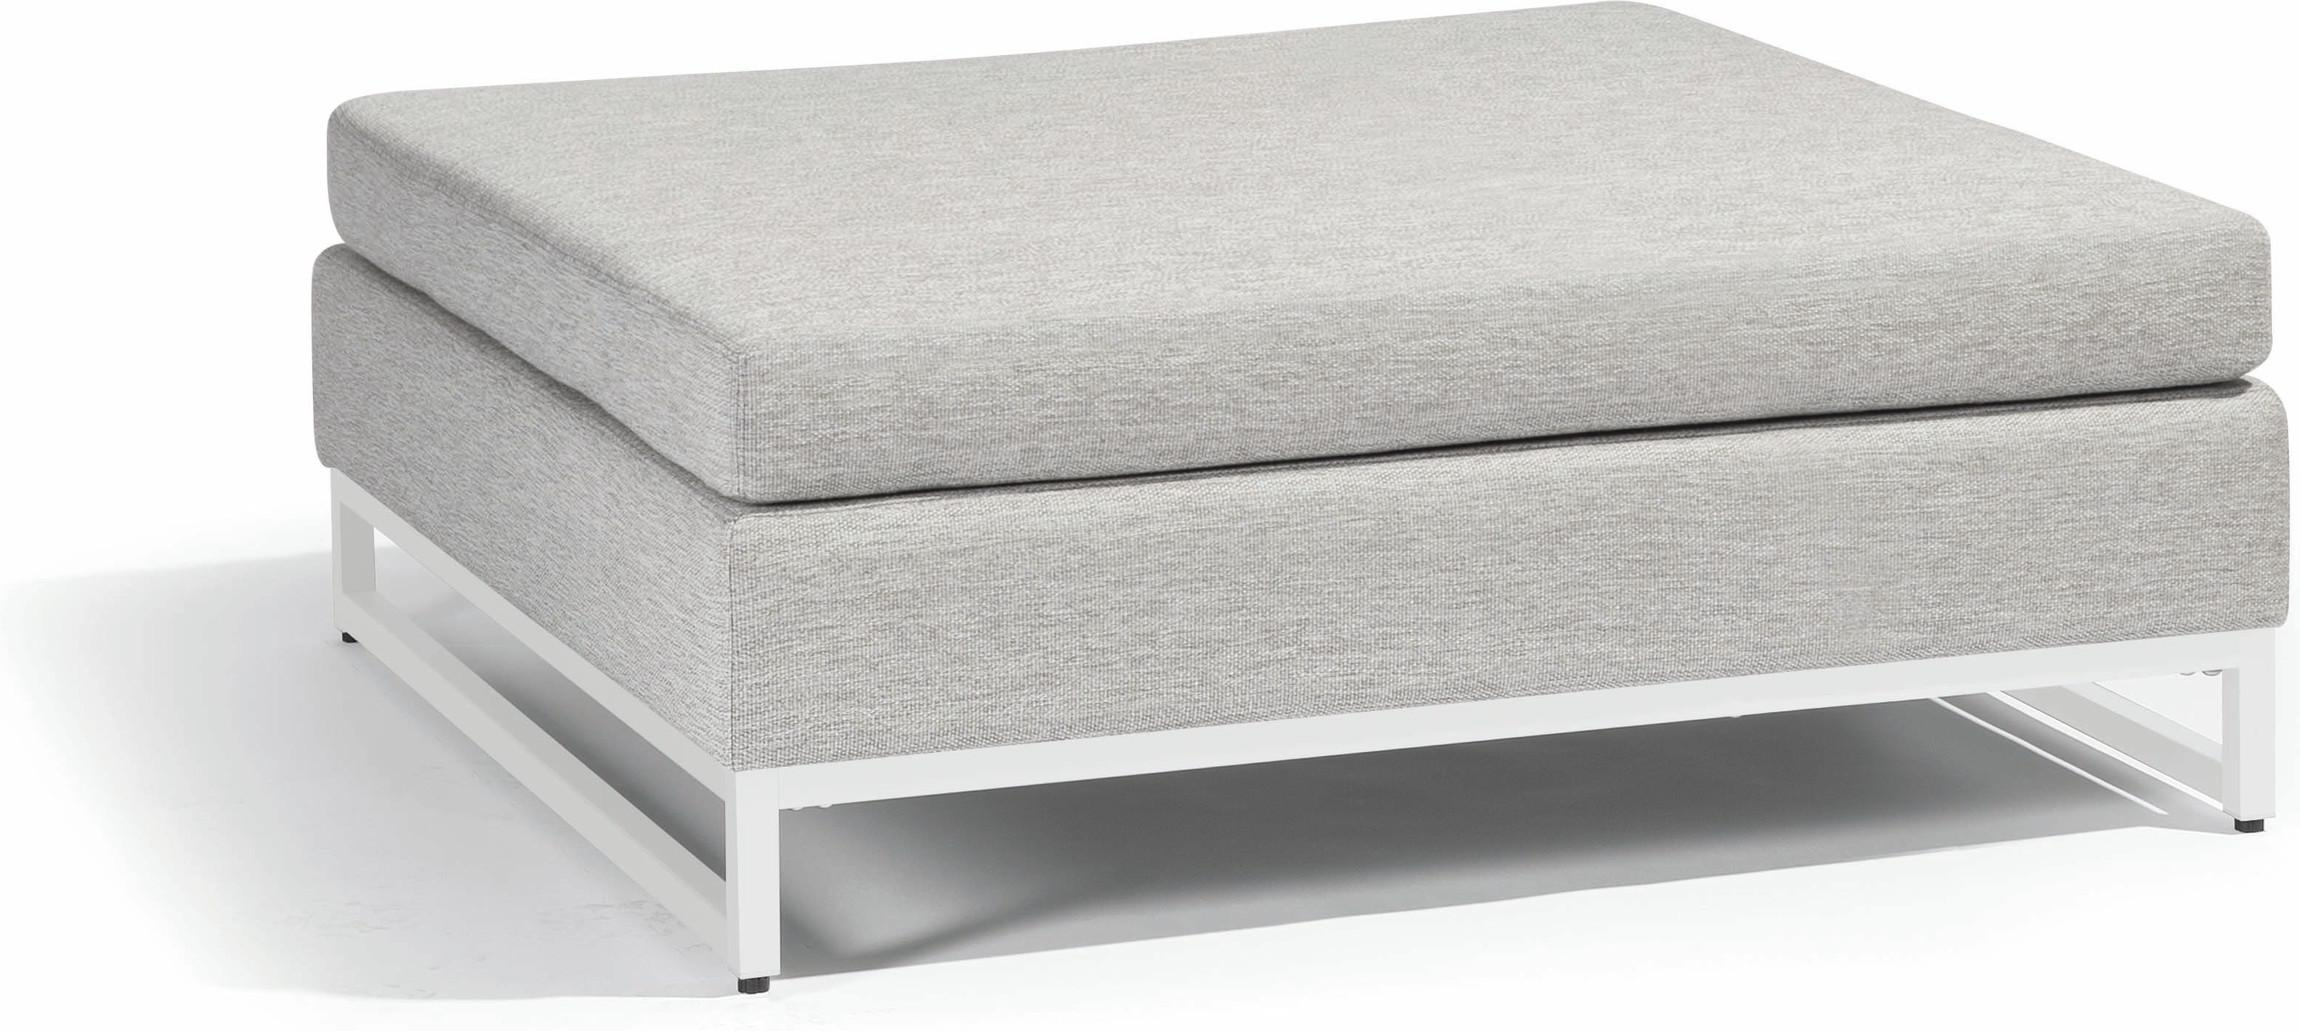 Zendo medium footstool - white - lotus smokey